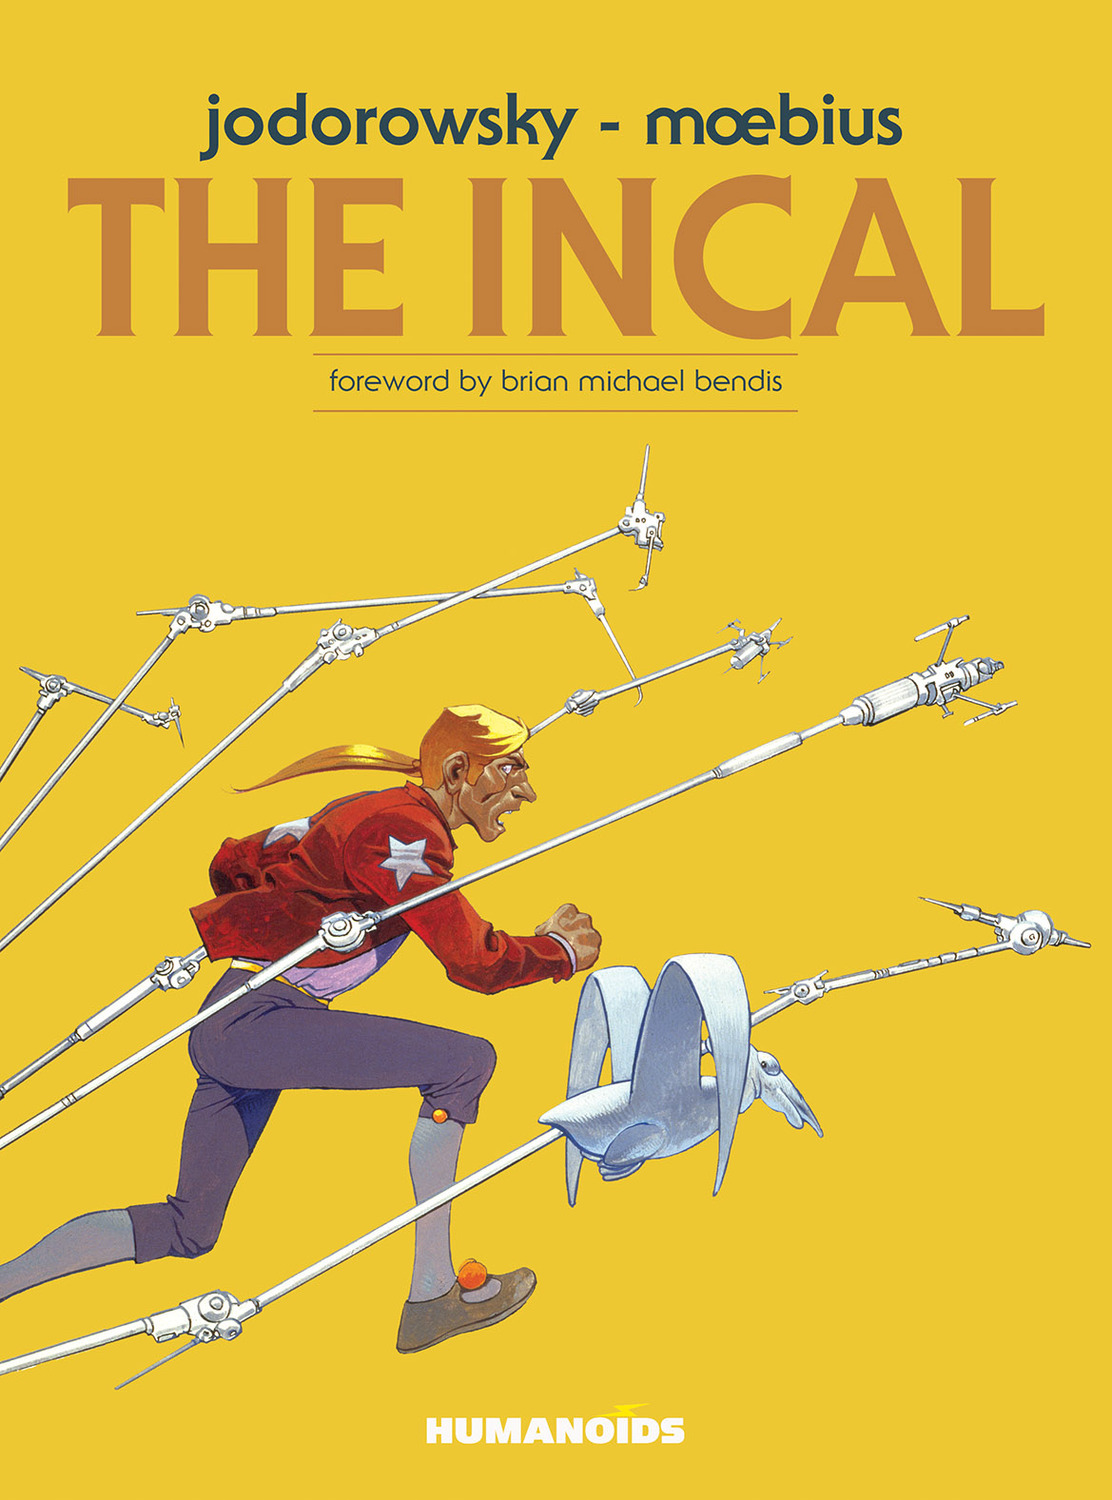 The Incal before the incal